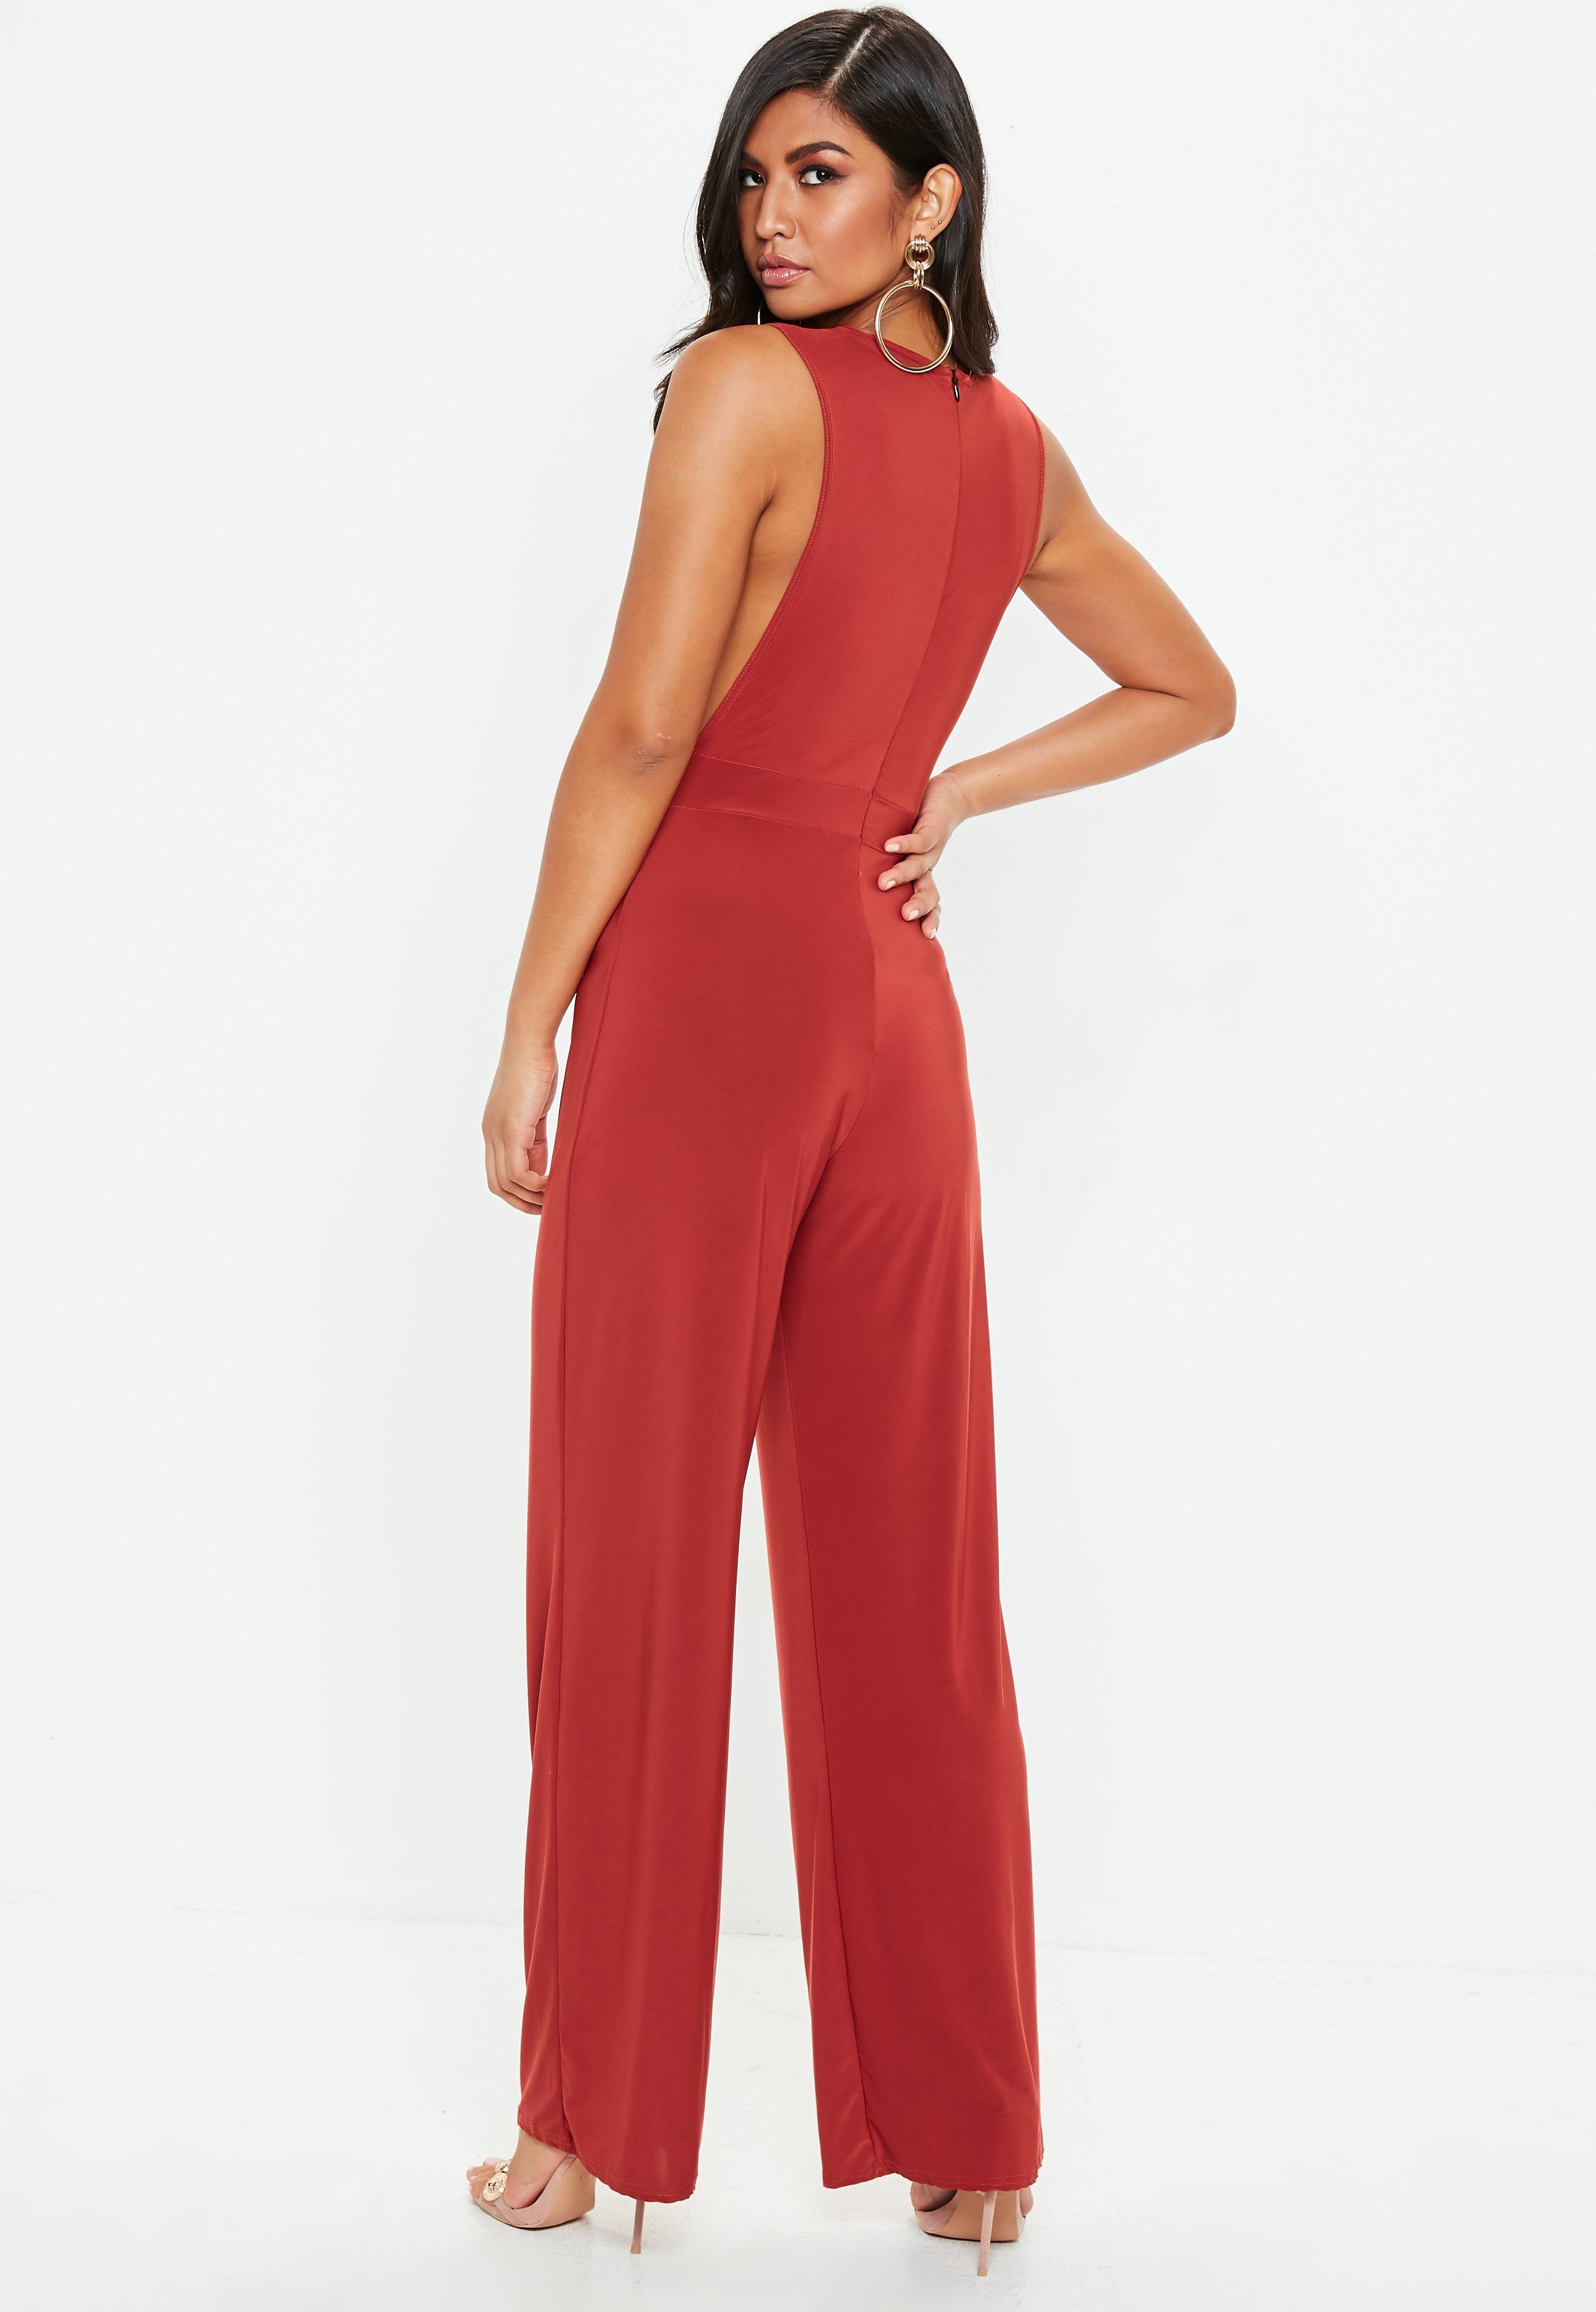 8baff73f0536 Lyst - Missguided Rust Slinky Side Boob Jumpsuit in Red